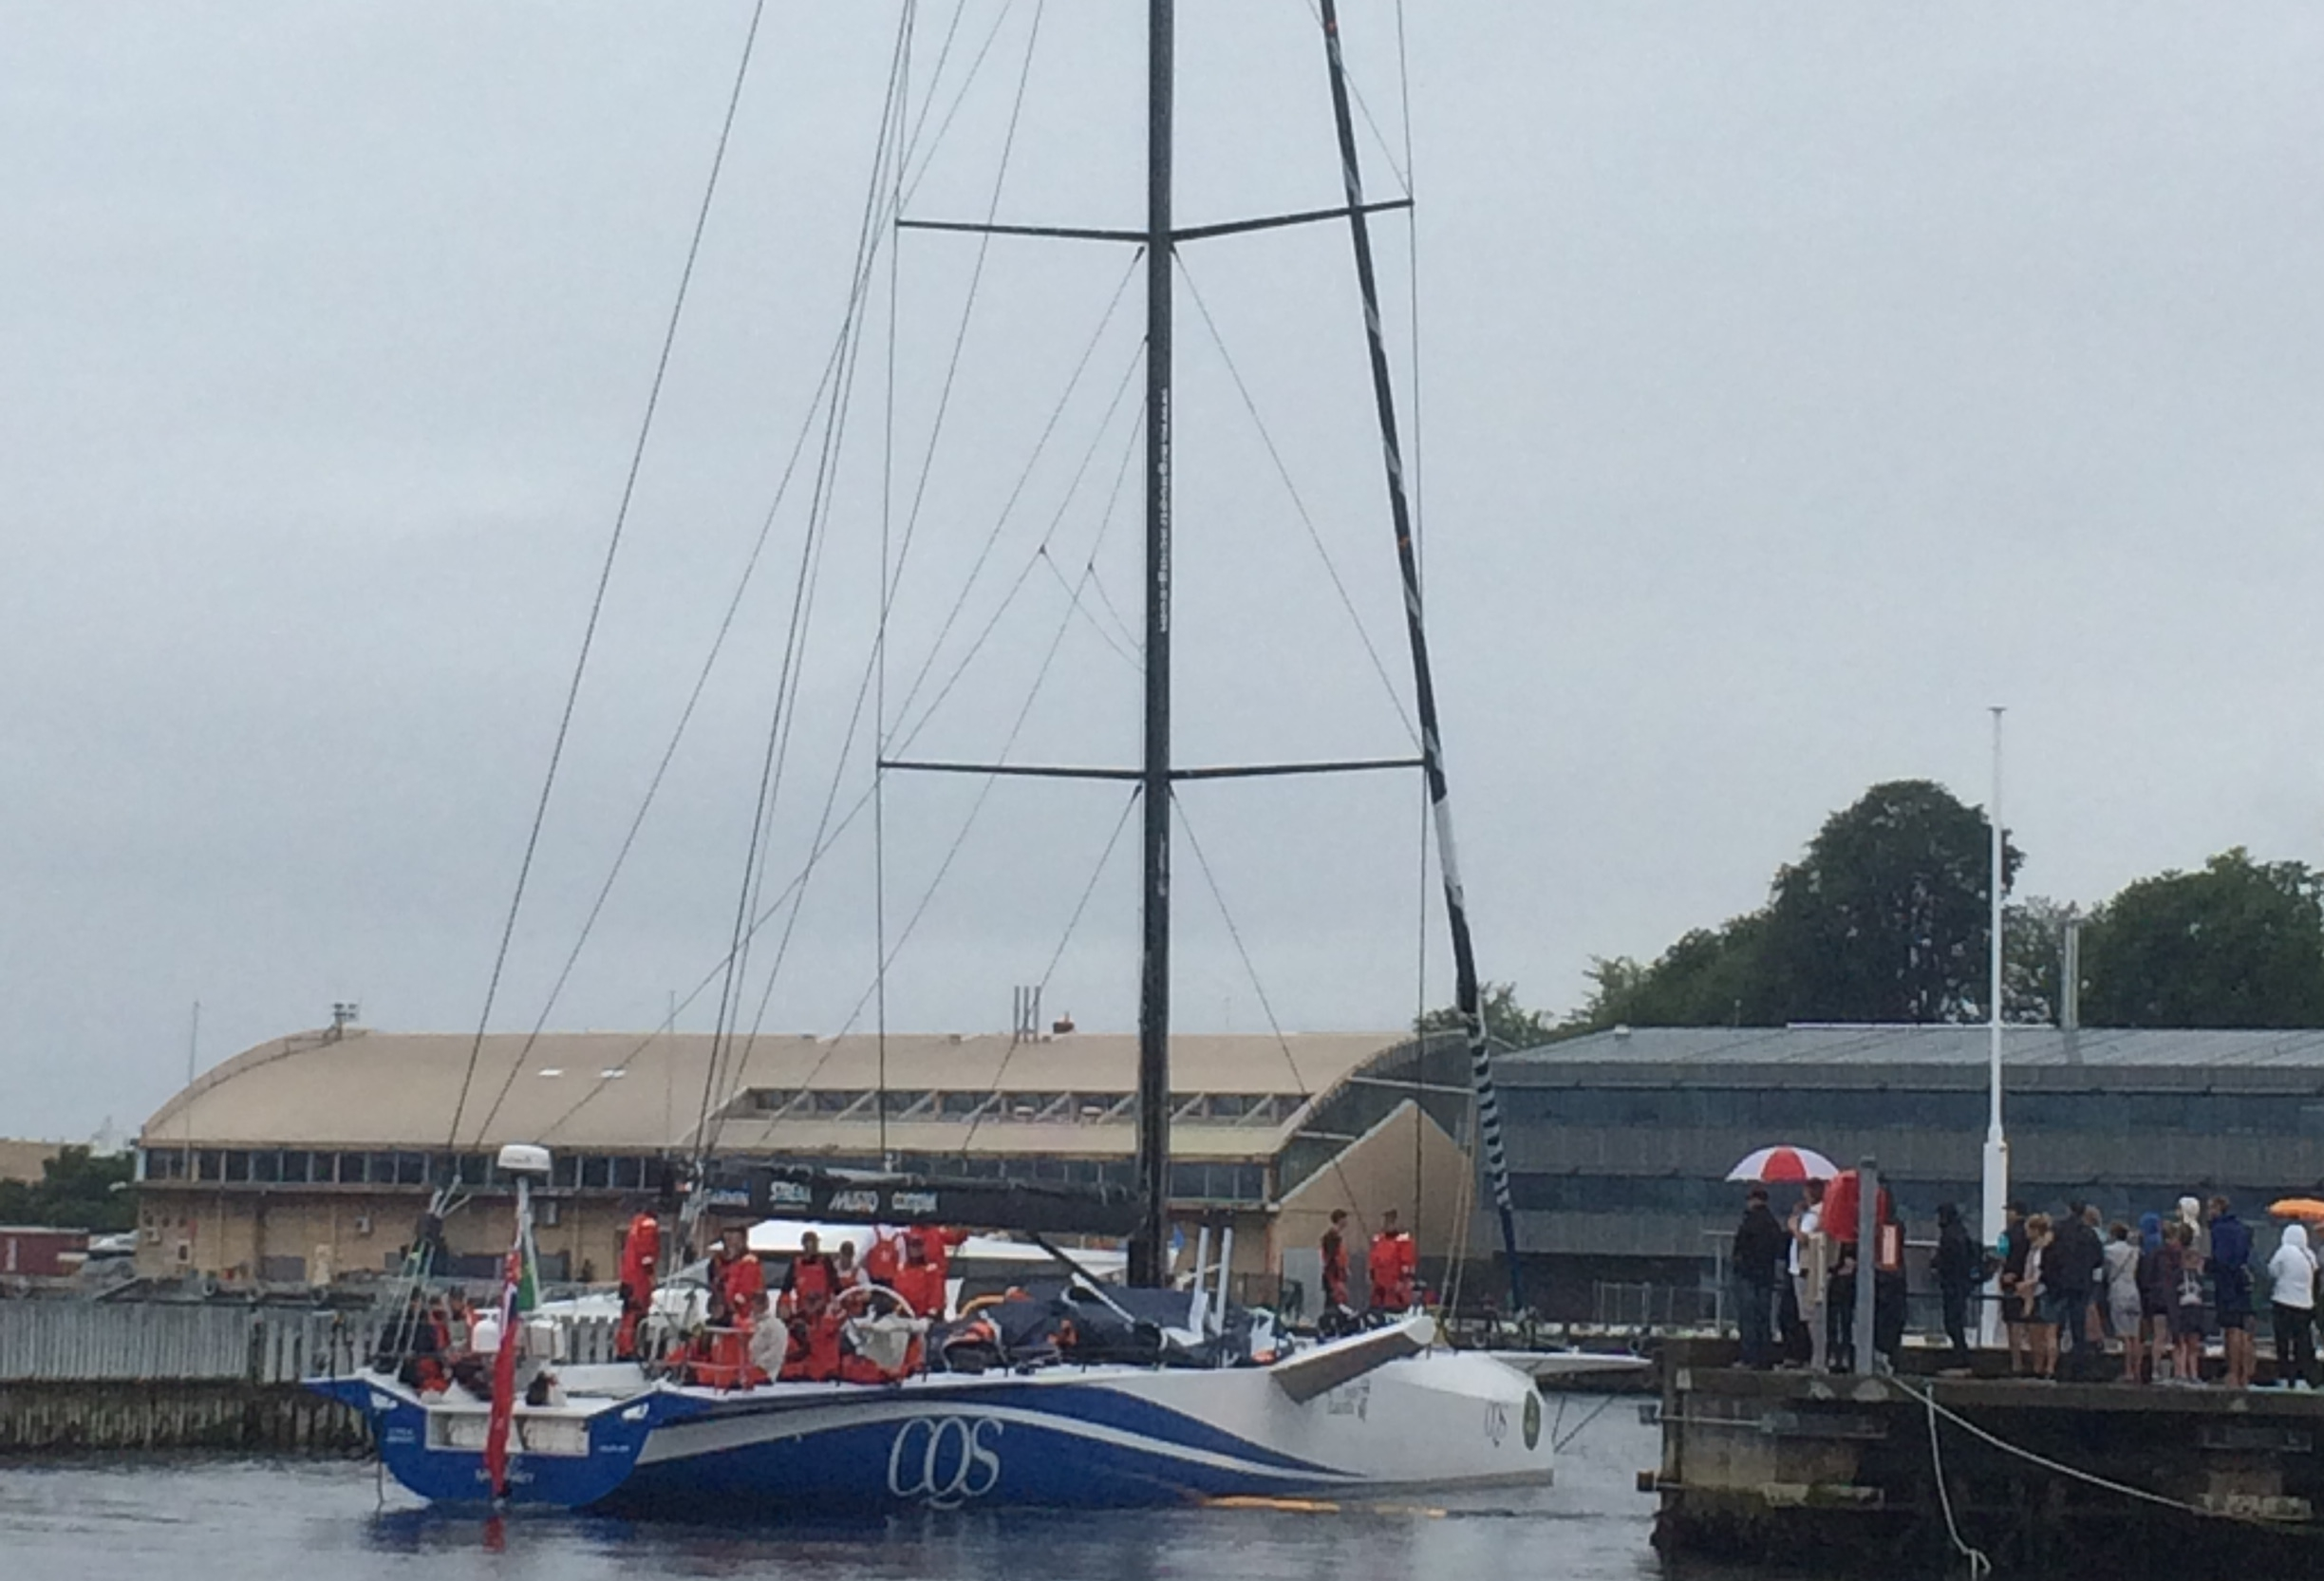 CQS finishes her first Sydney to Hobart